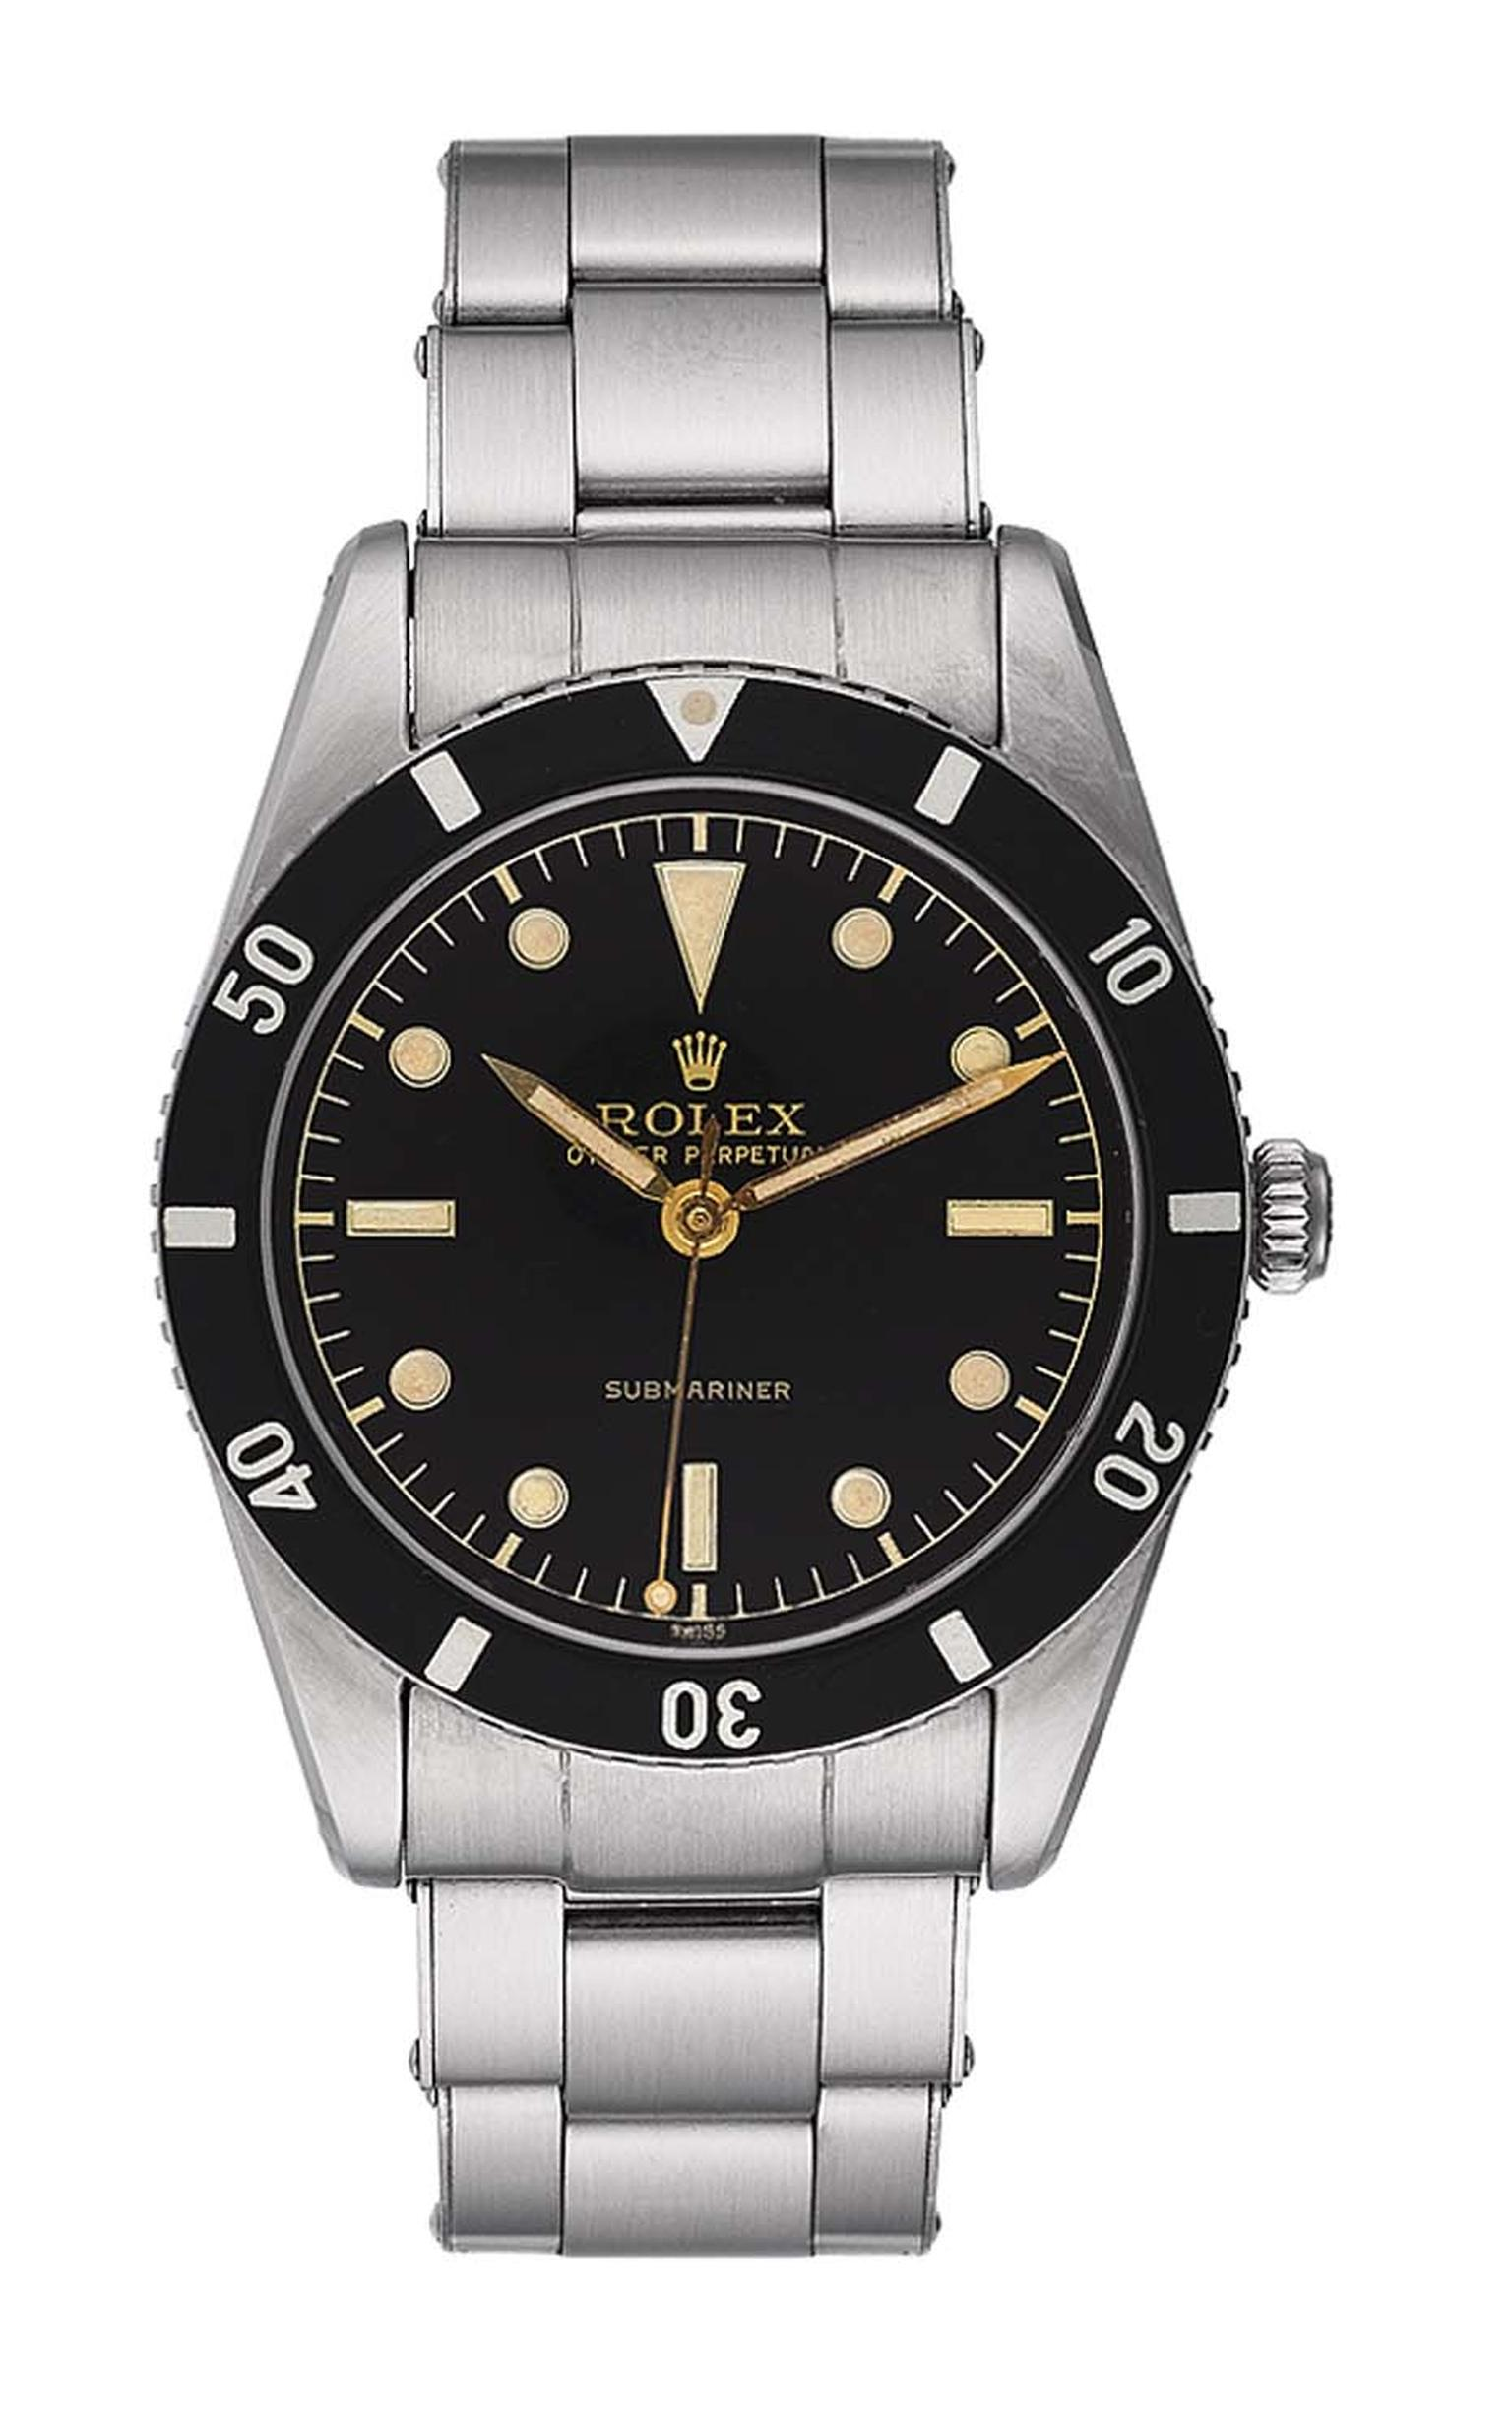 The very first Rolex Submariner dive watch, launched in 1953.